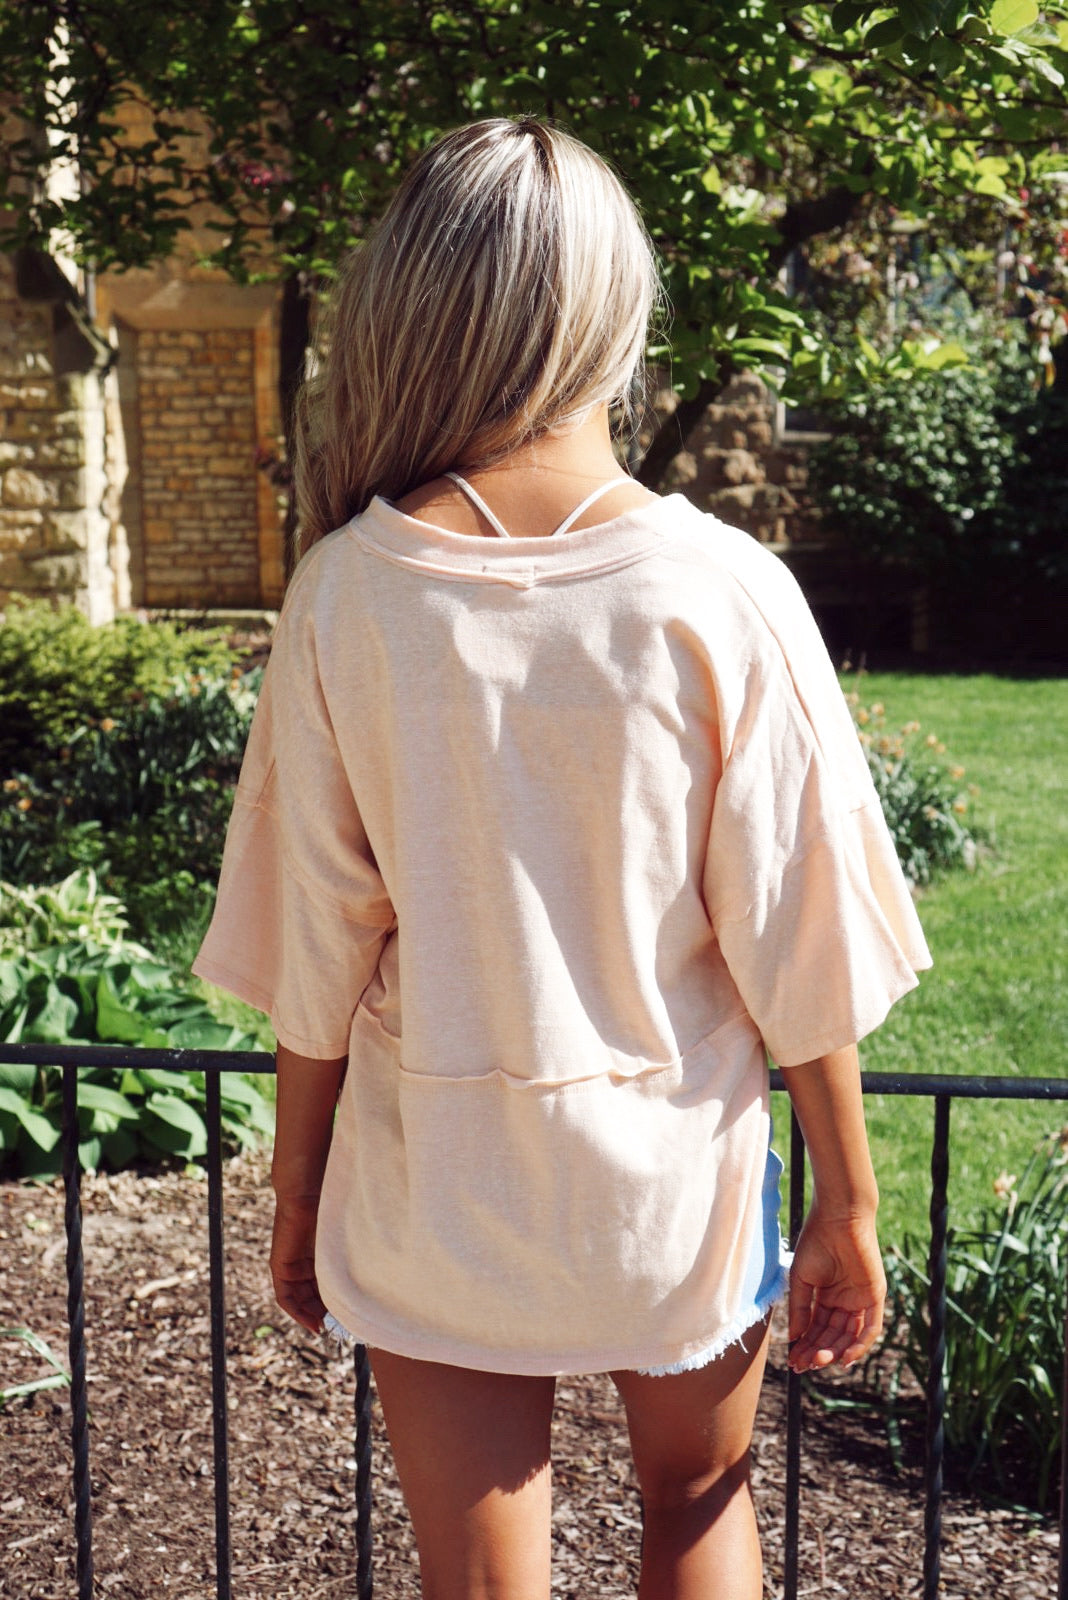 Starcrossed Peach Top